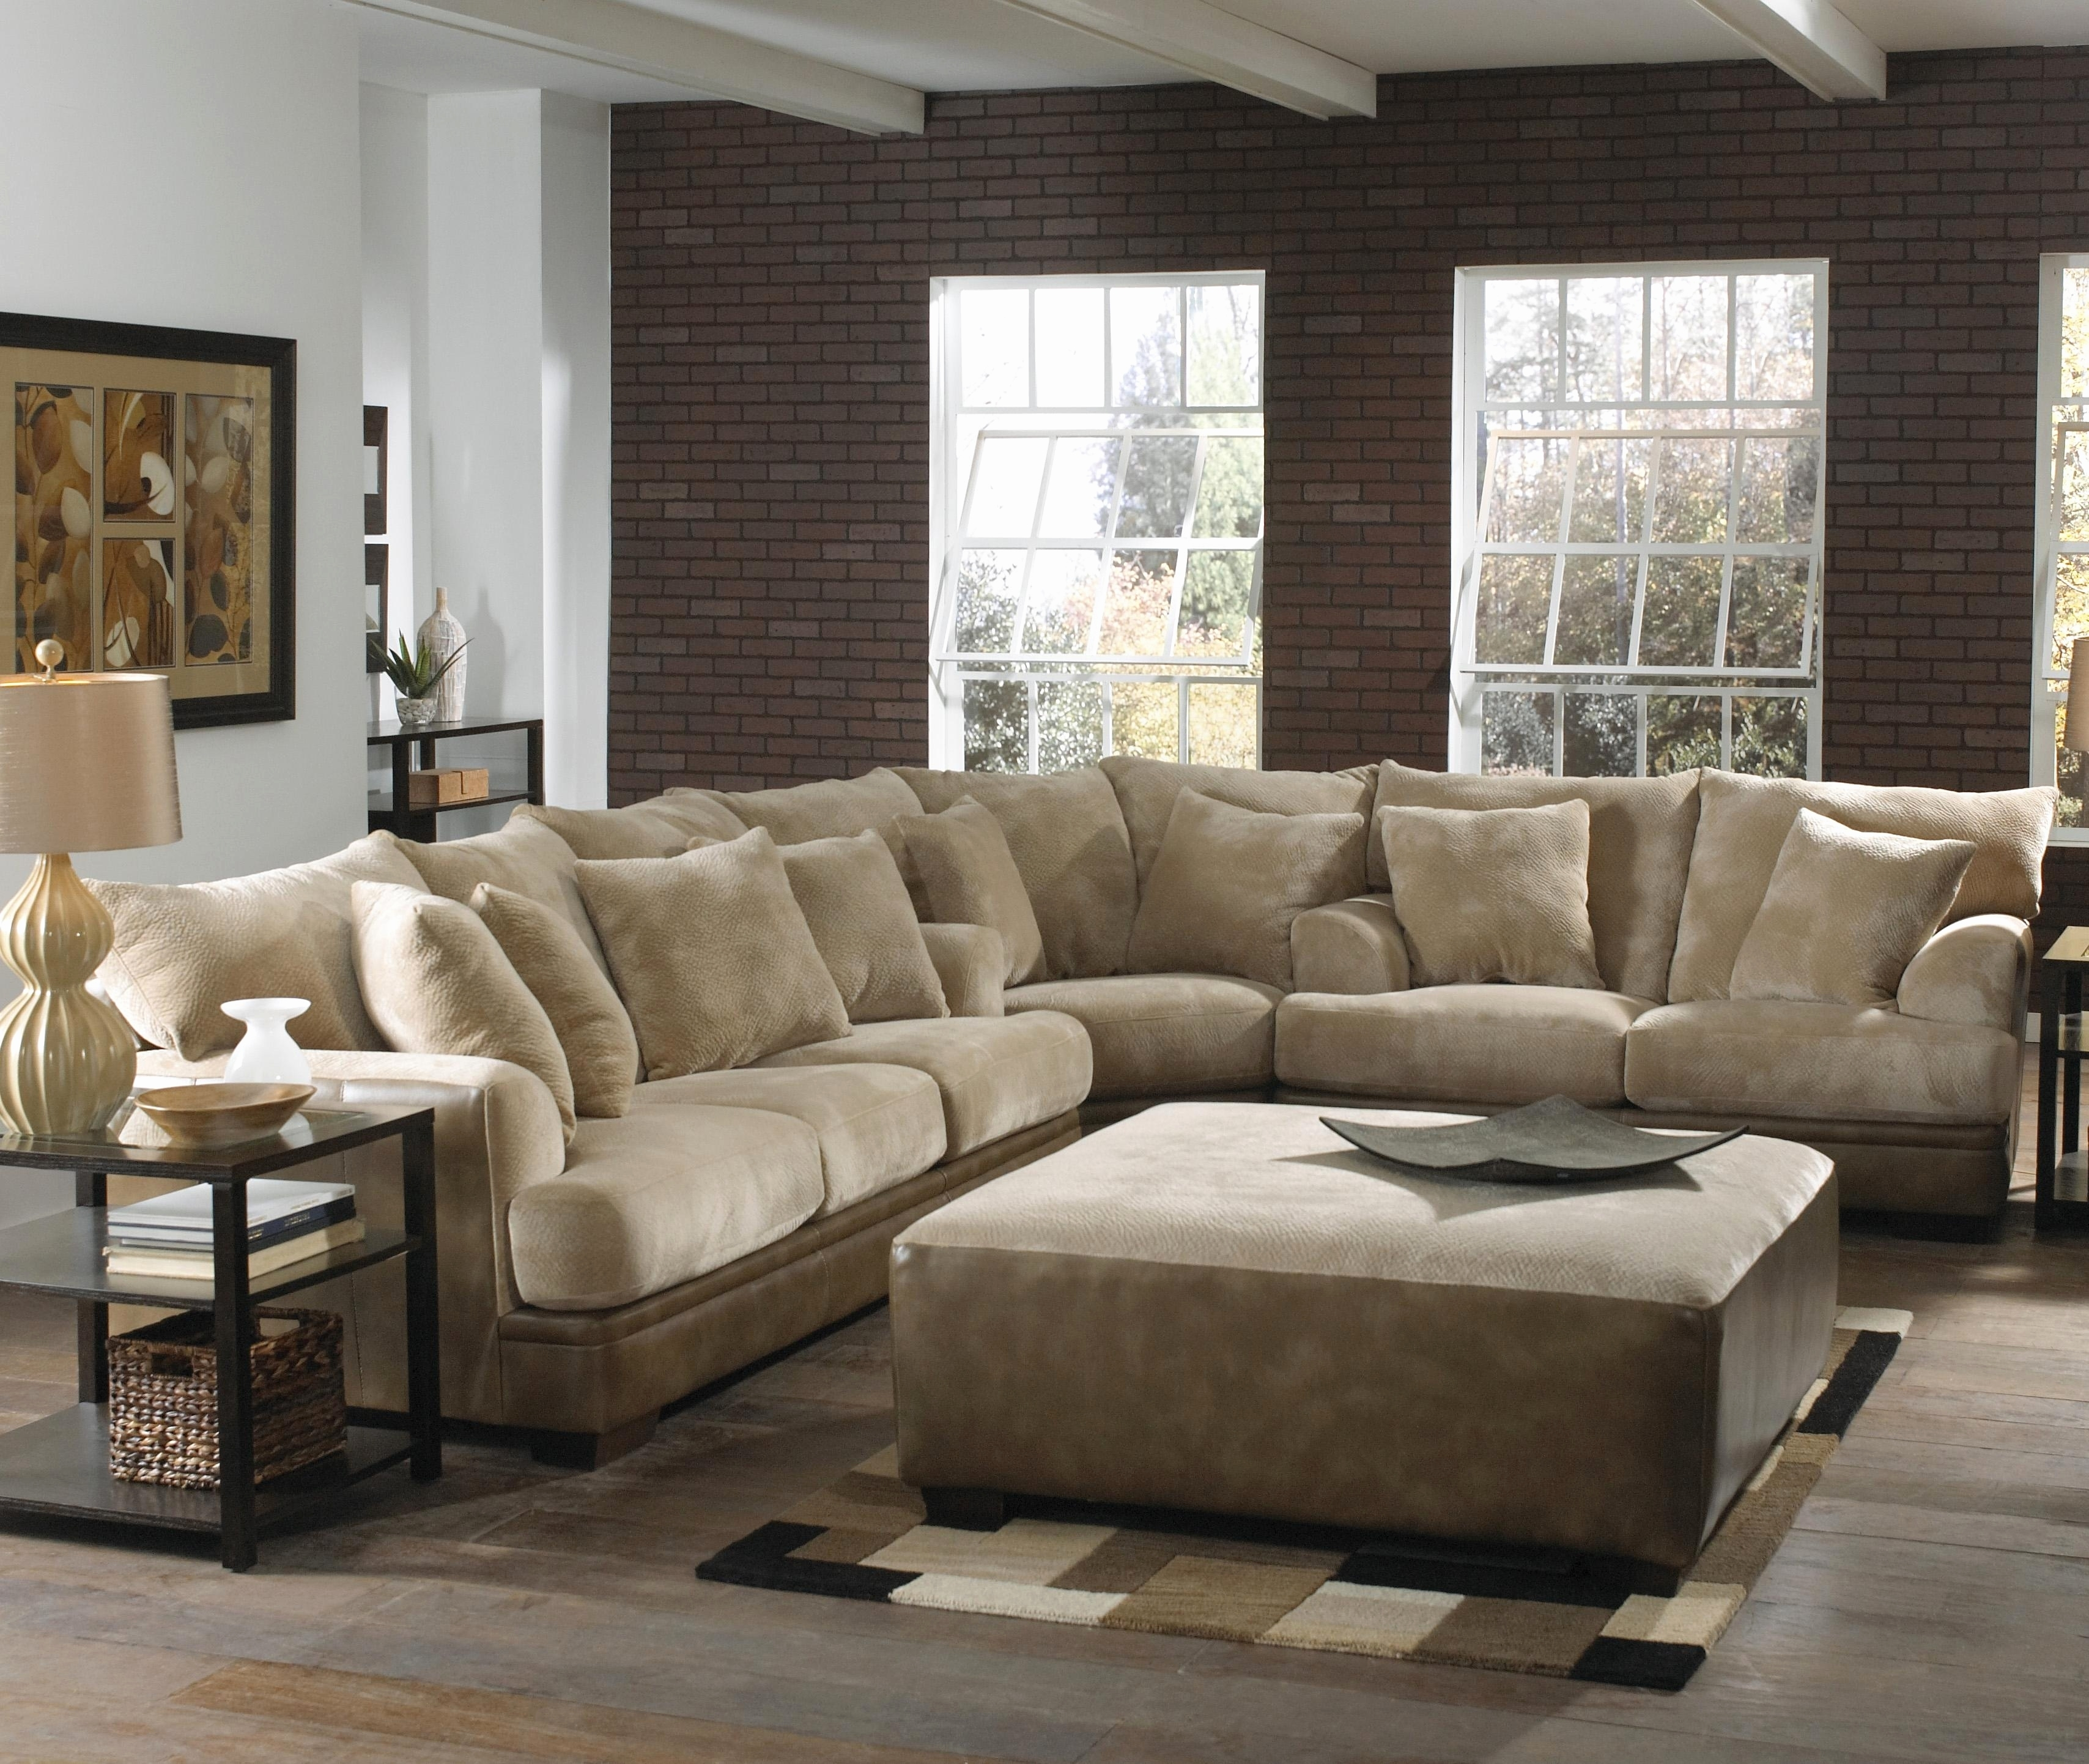 Fresh Sectional Sofa With Extra Wide Chaise 2018 – Couches Ideas With Wide Sectional Sofas (View 8 of 10)